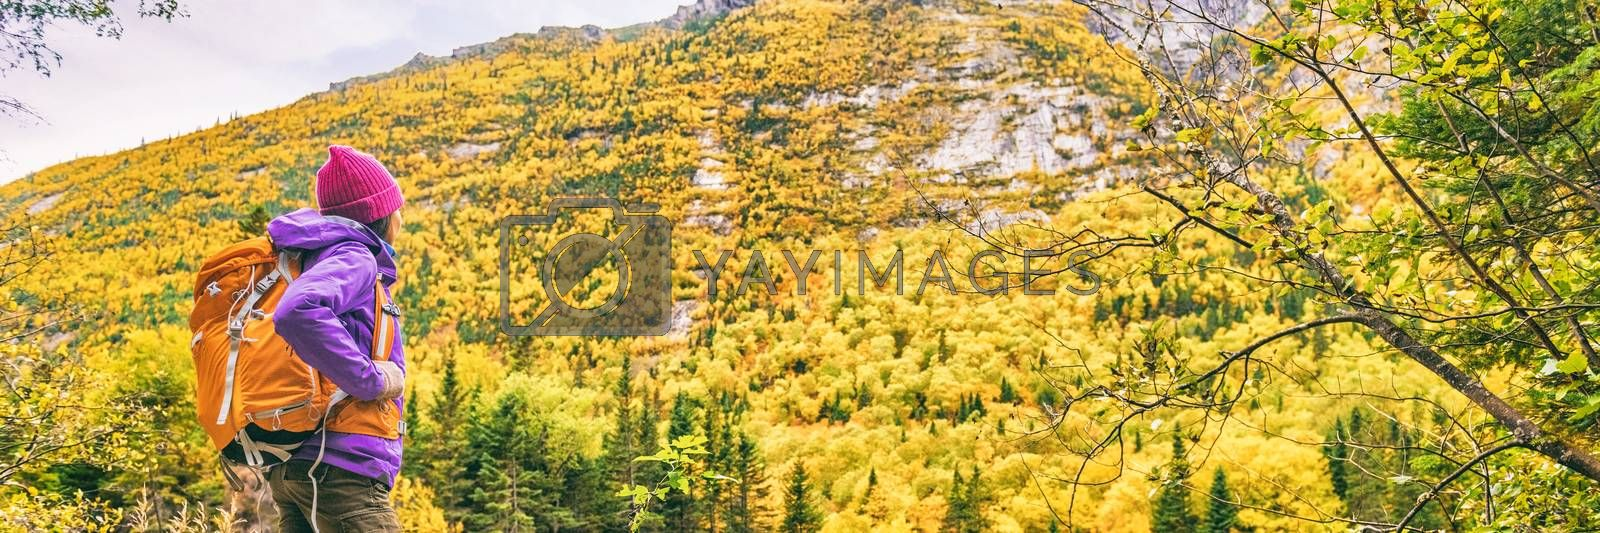 Woman hiker hiking in trail autumn nature panoramic banner. Girl relaxing looking at scenic view of fall mountain landscape . Adventure travel outdoor person near river during nature hike in autumn.